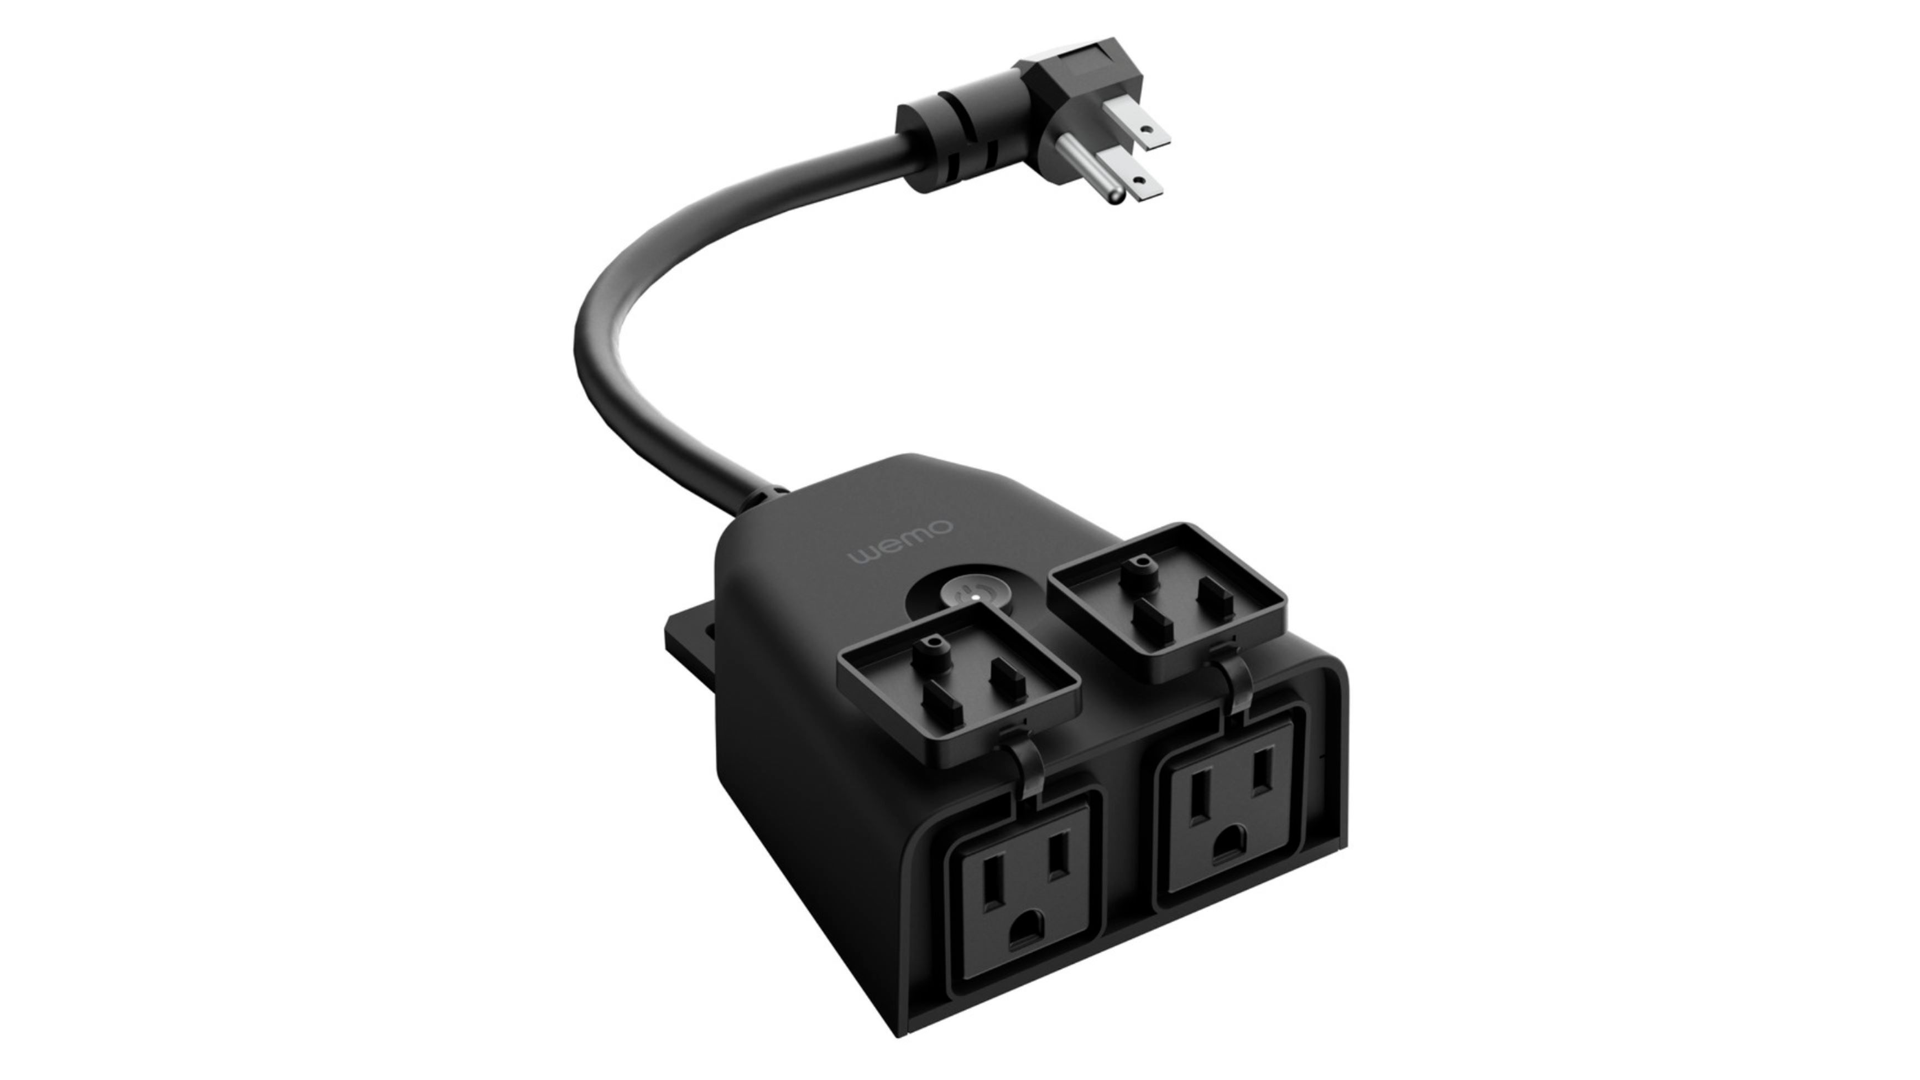 A picture of the Wemo outdoor smart plug with Homekit compatibility.